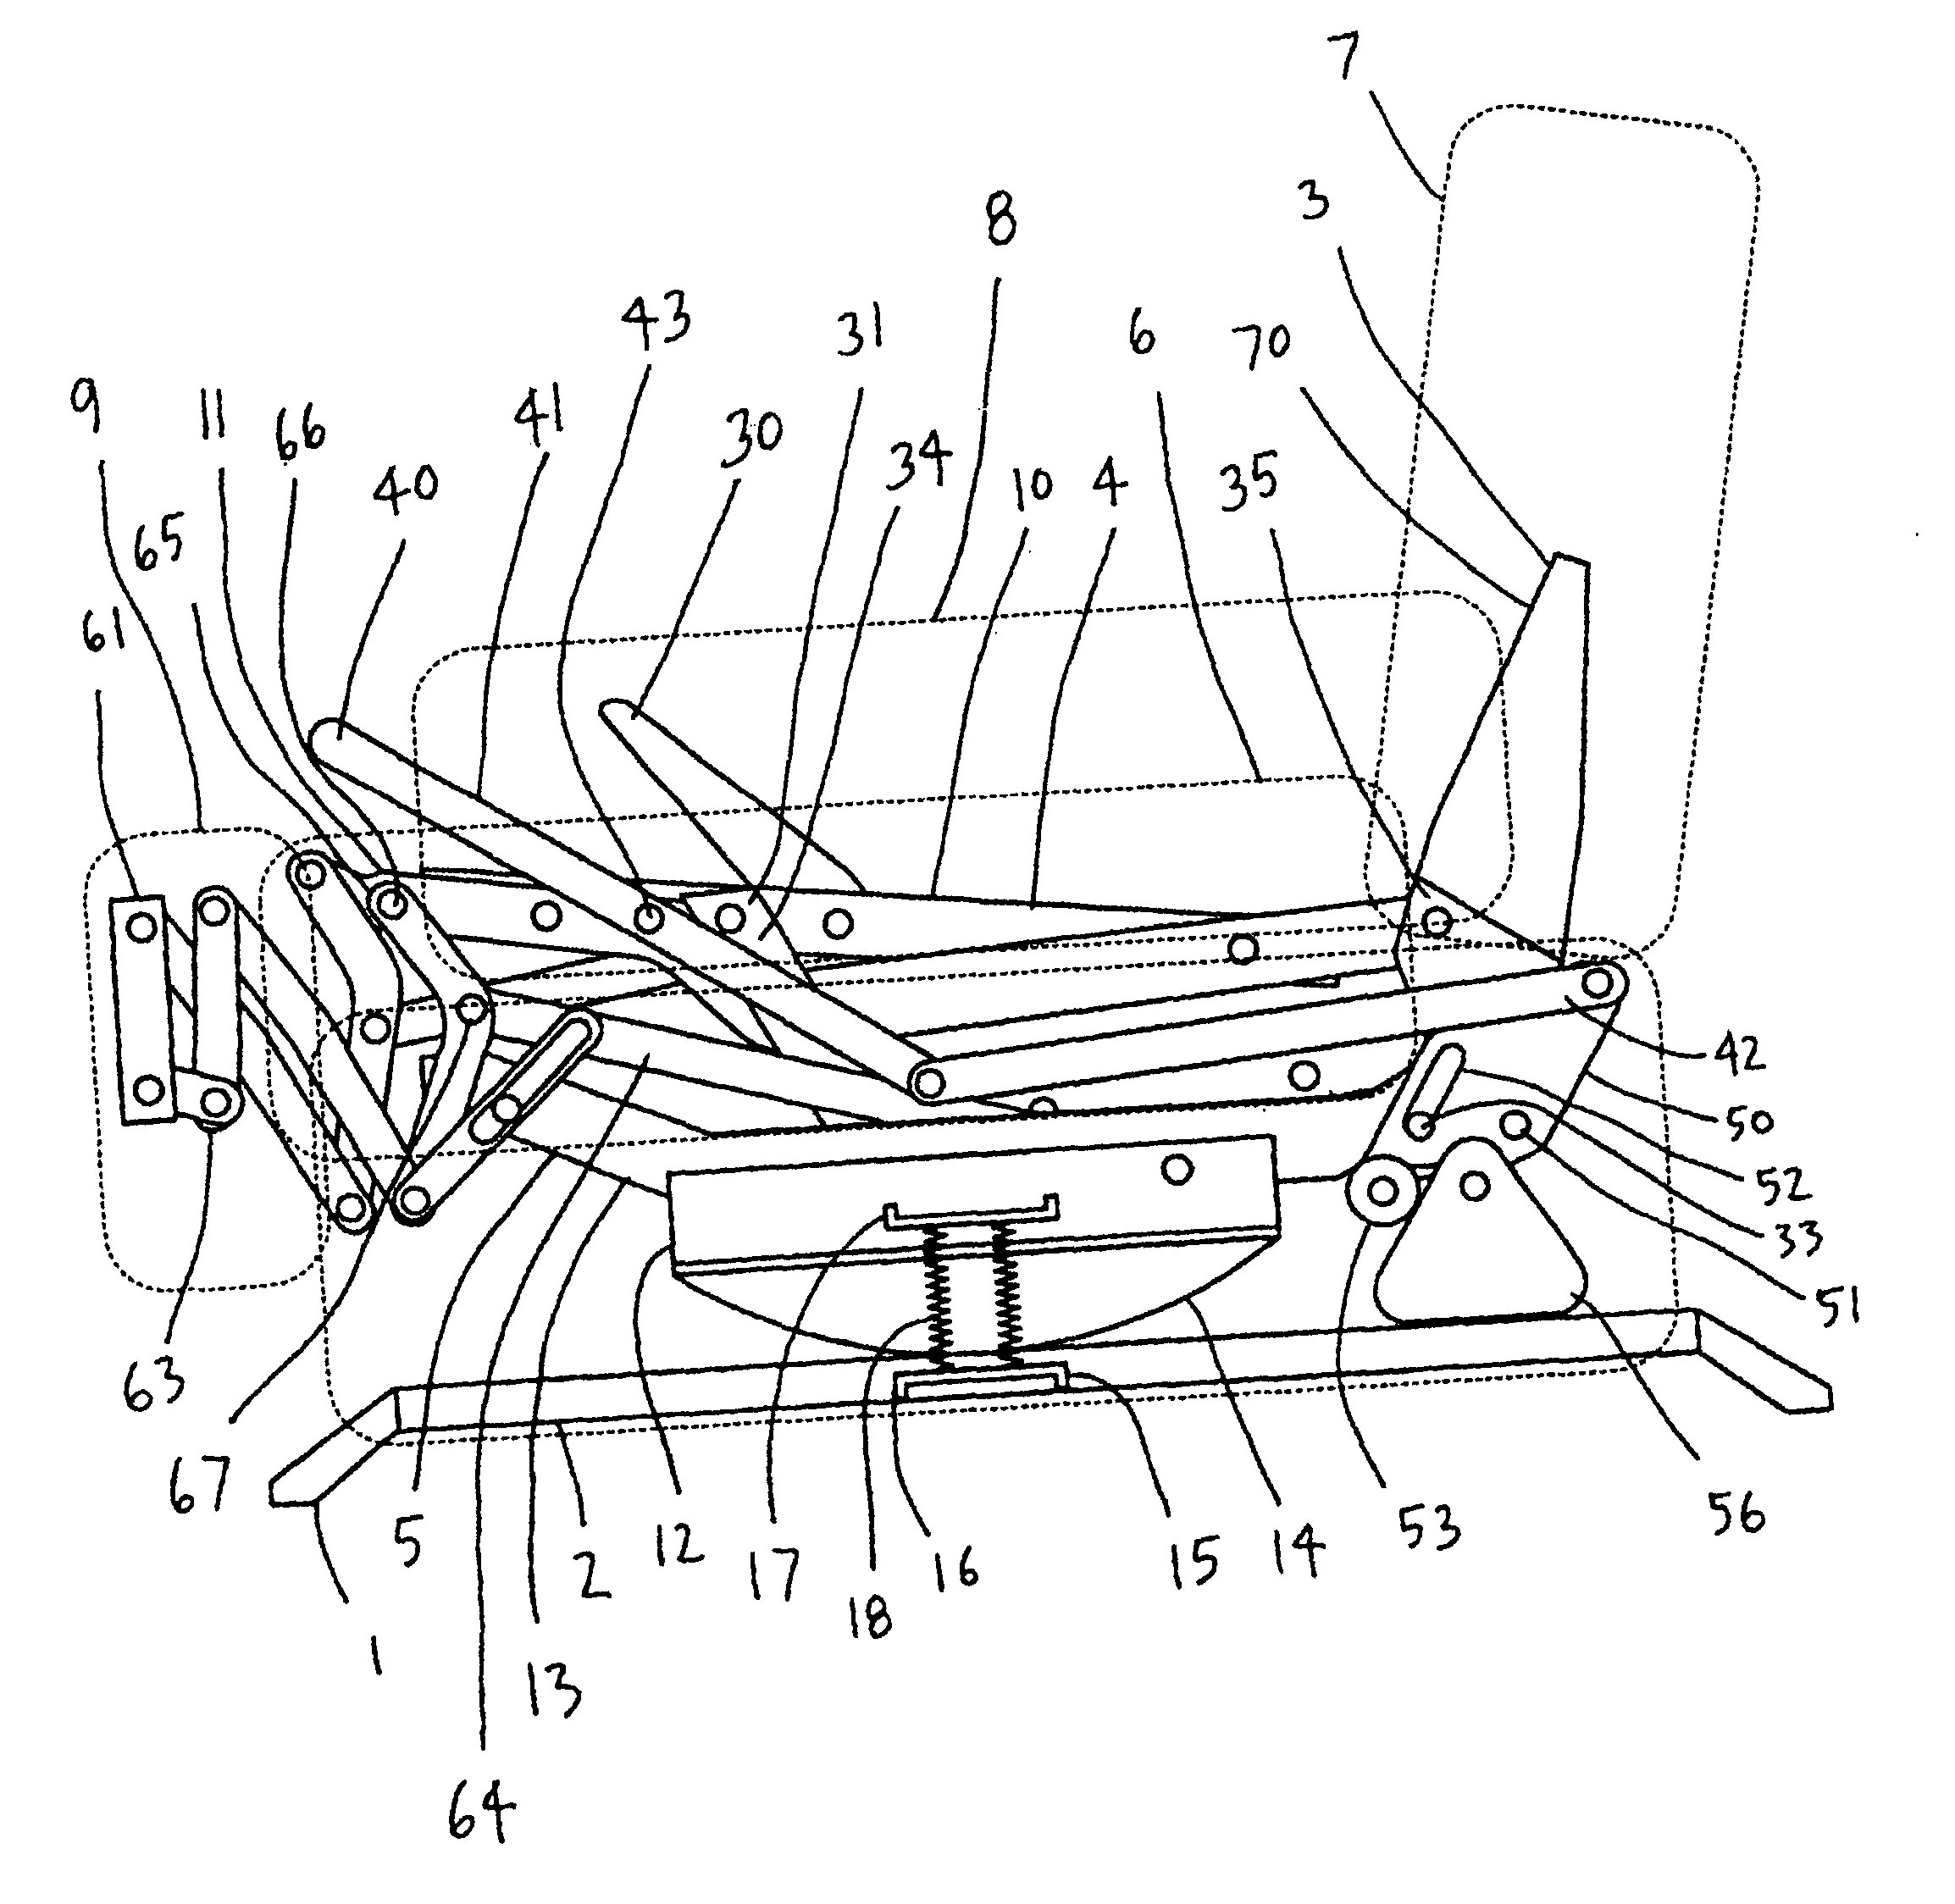 Patent Drawing  sc 1 st  Google & Patent US6733071 - Self-locking rocker recliner chair - Google Patents islam-shia.org